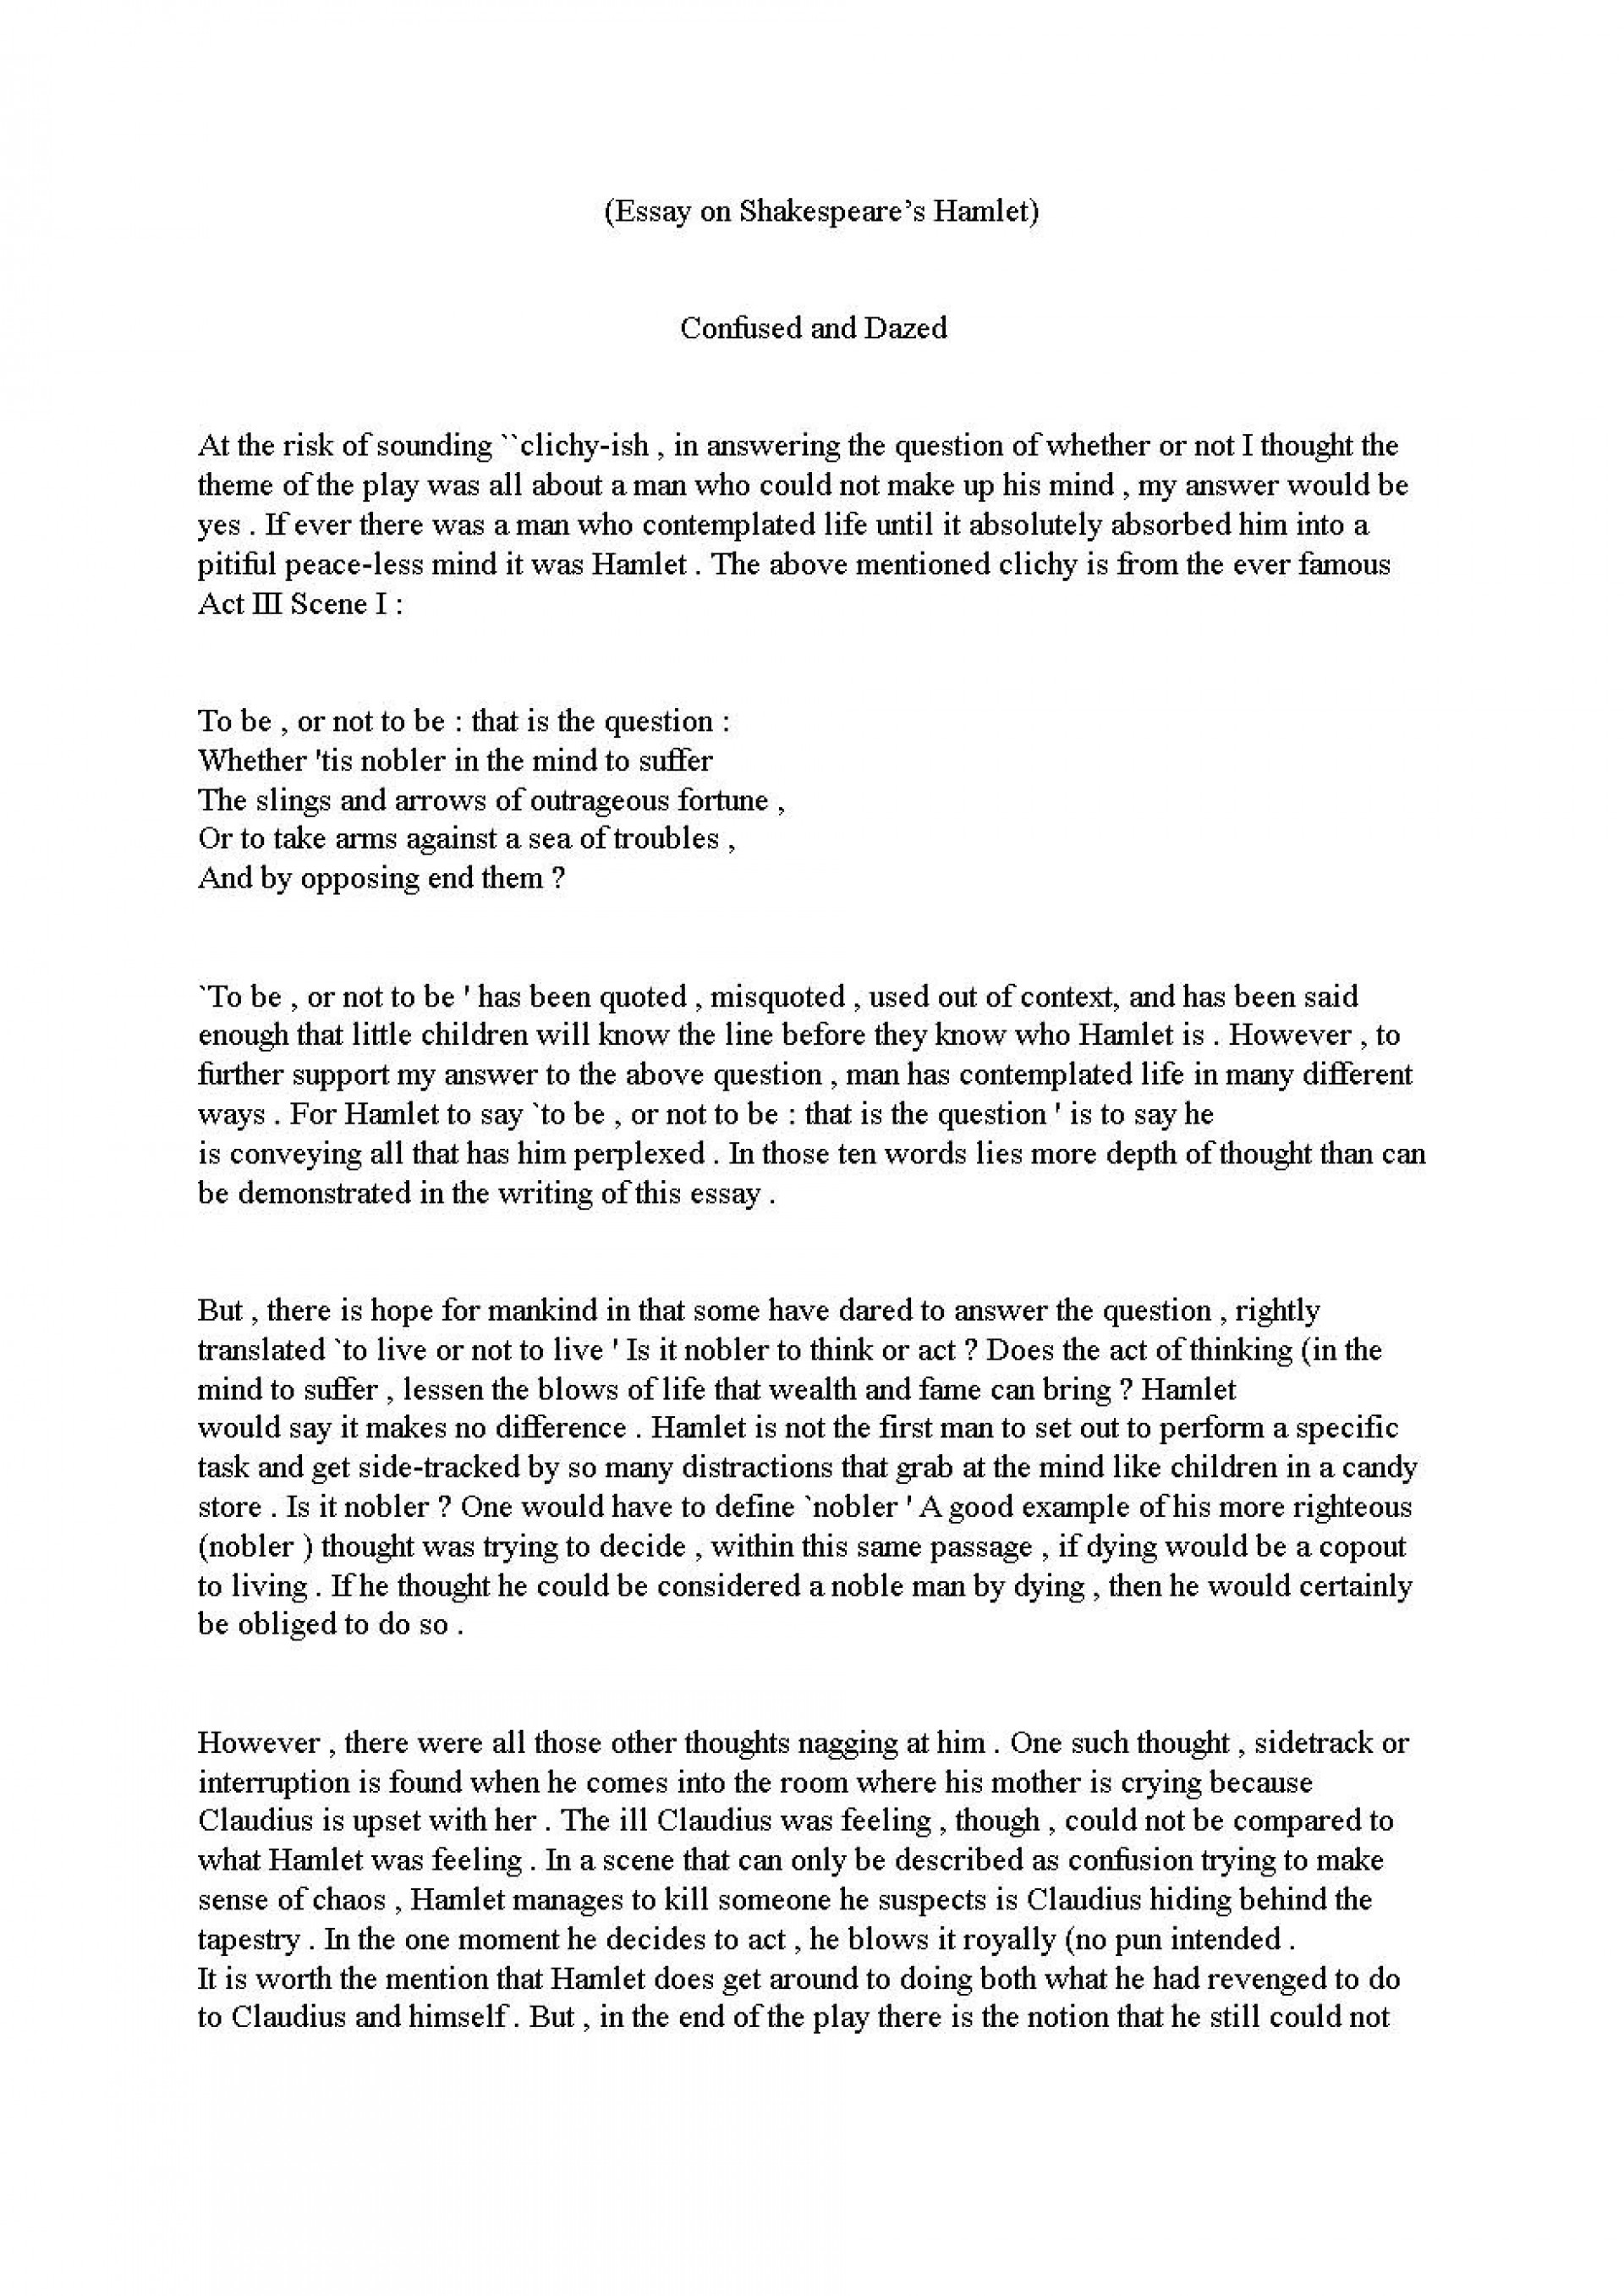 007 Drama Essay Sample Shorts Breathtaking Short Examples For Students Argumentative High School 1920